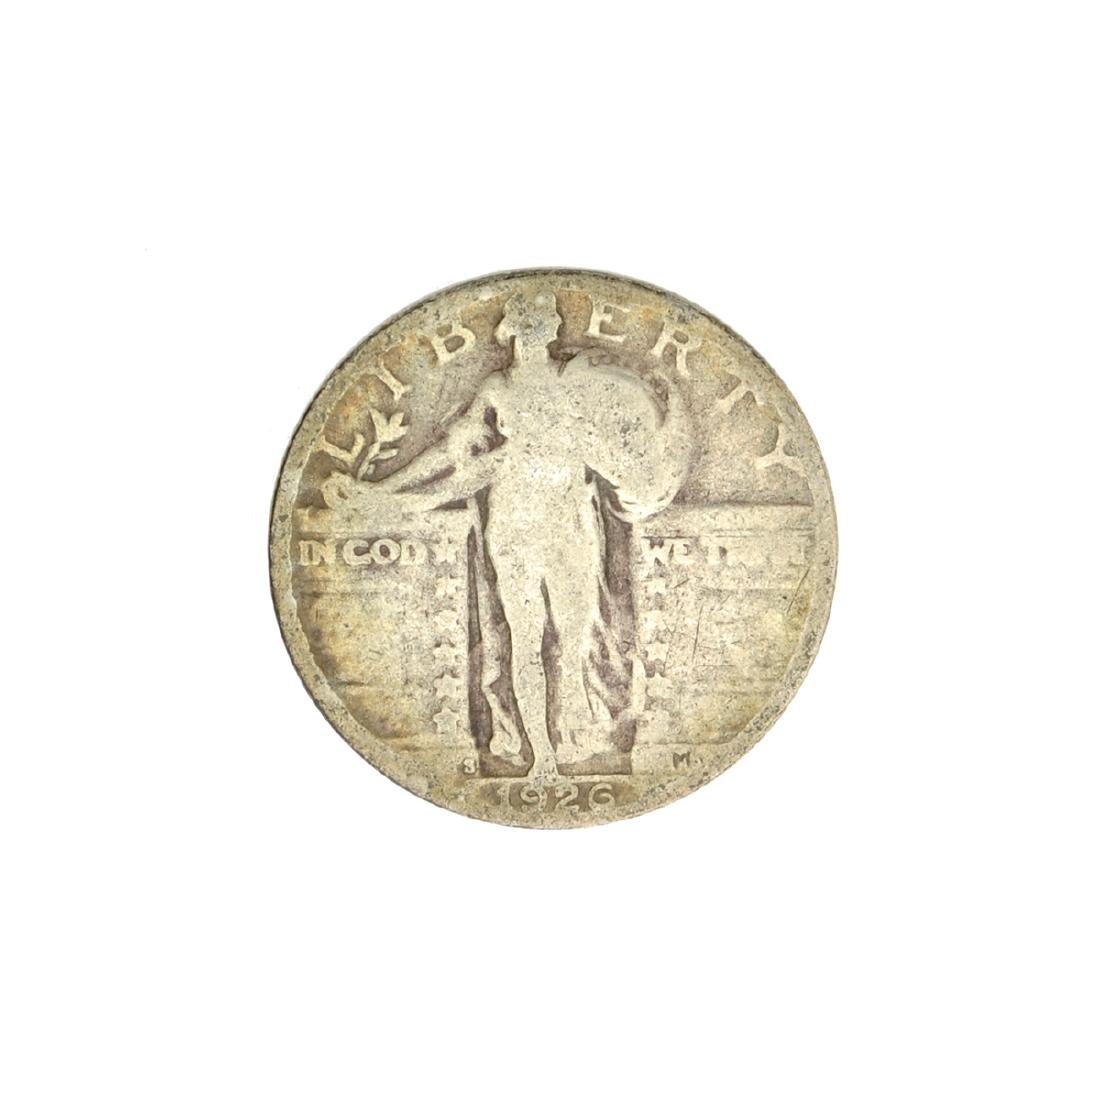 1926 Standing Liberty Quarter Dollar Coin